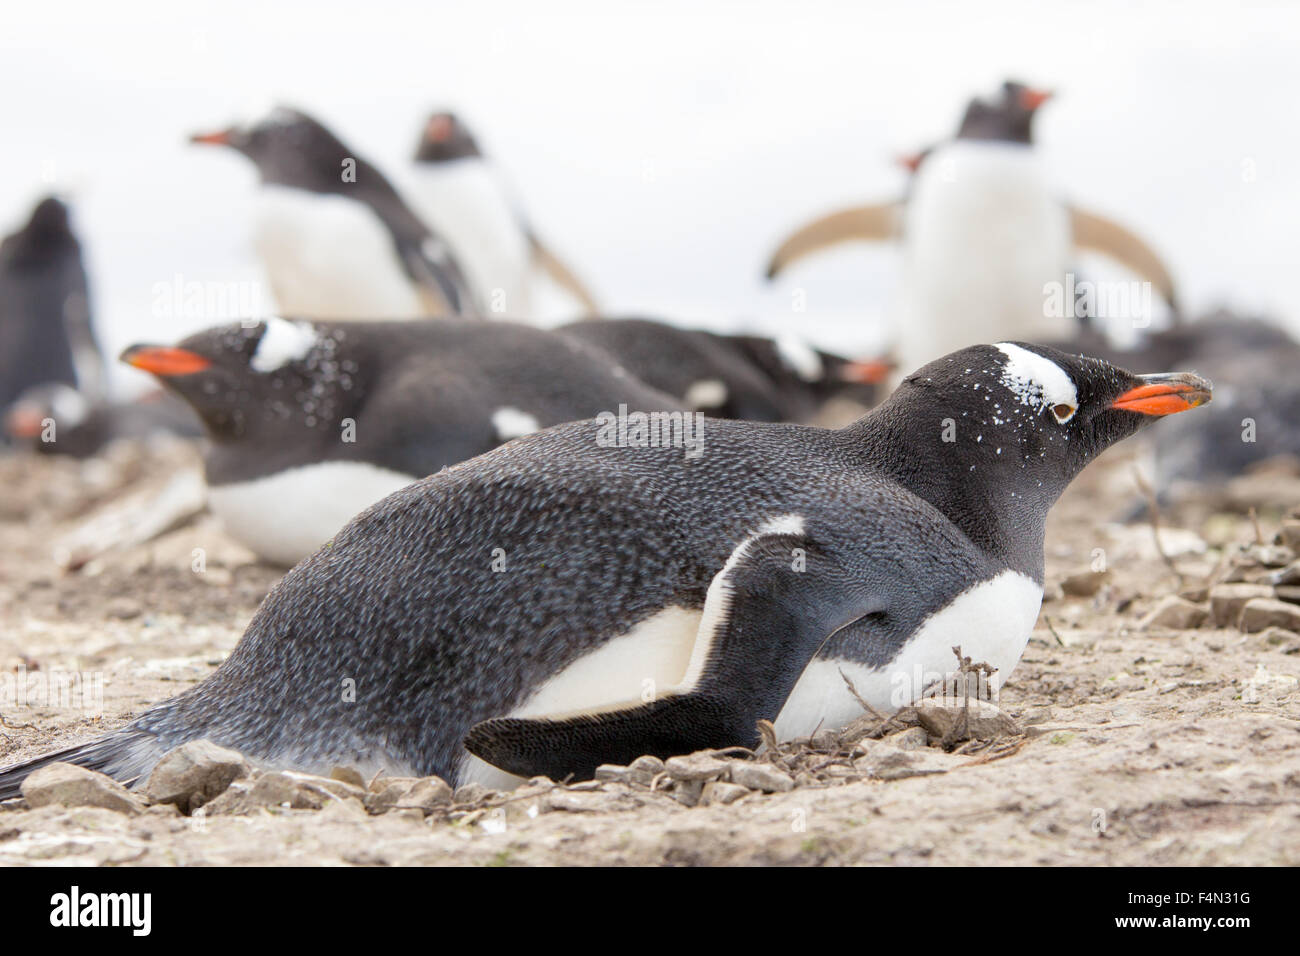 Gentoo penguin lying on her rock nest. Falkland Islands. - Stock Image